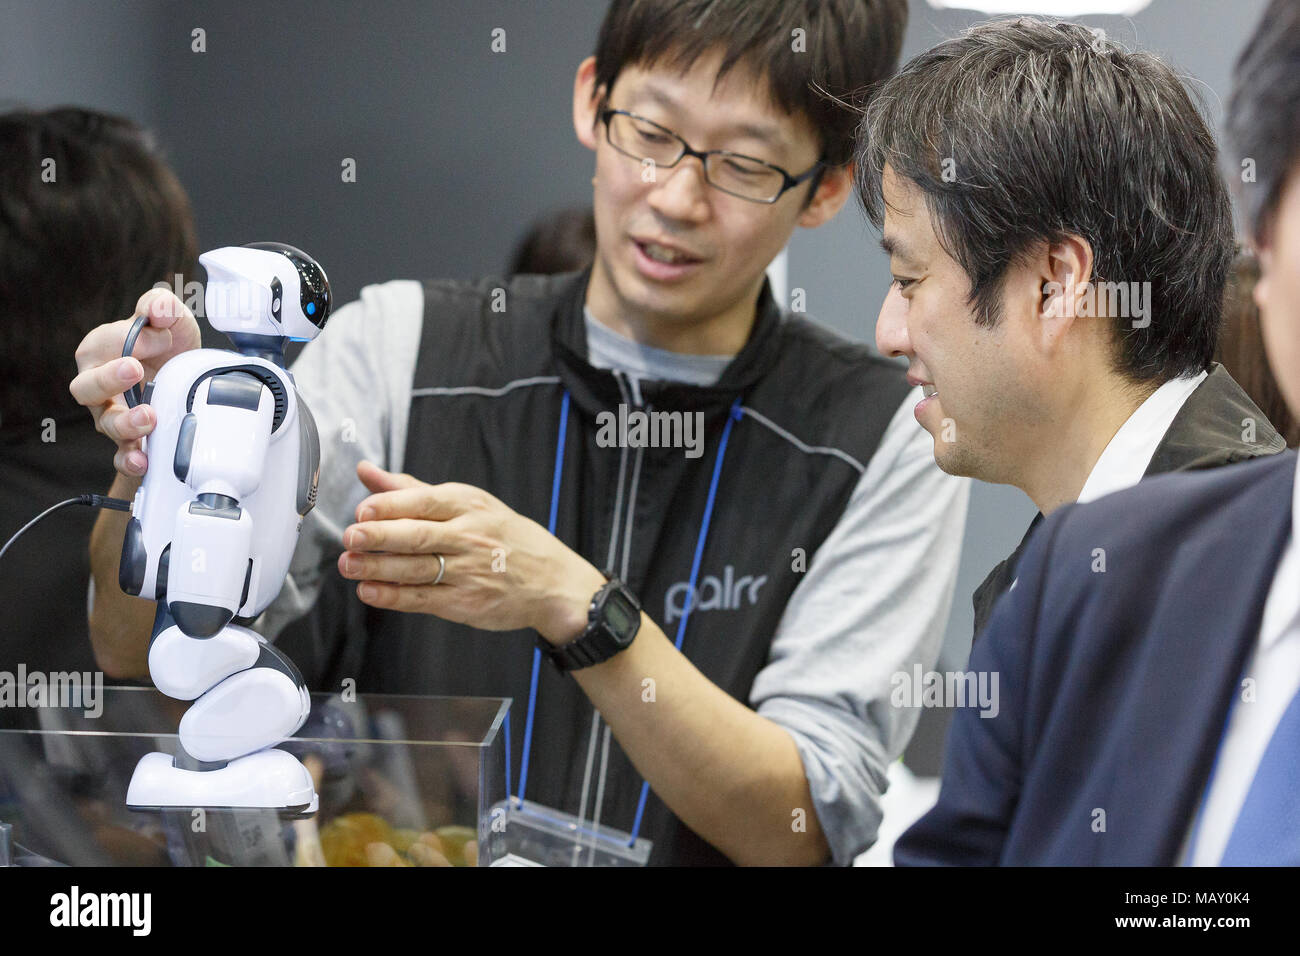 Tokyo Japan April 5 2018 An Exhibitor Shows A Robot Palro During